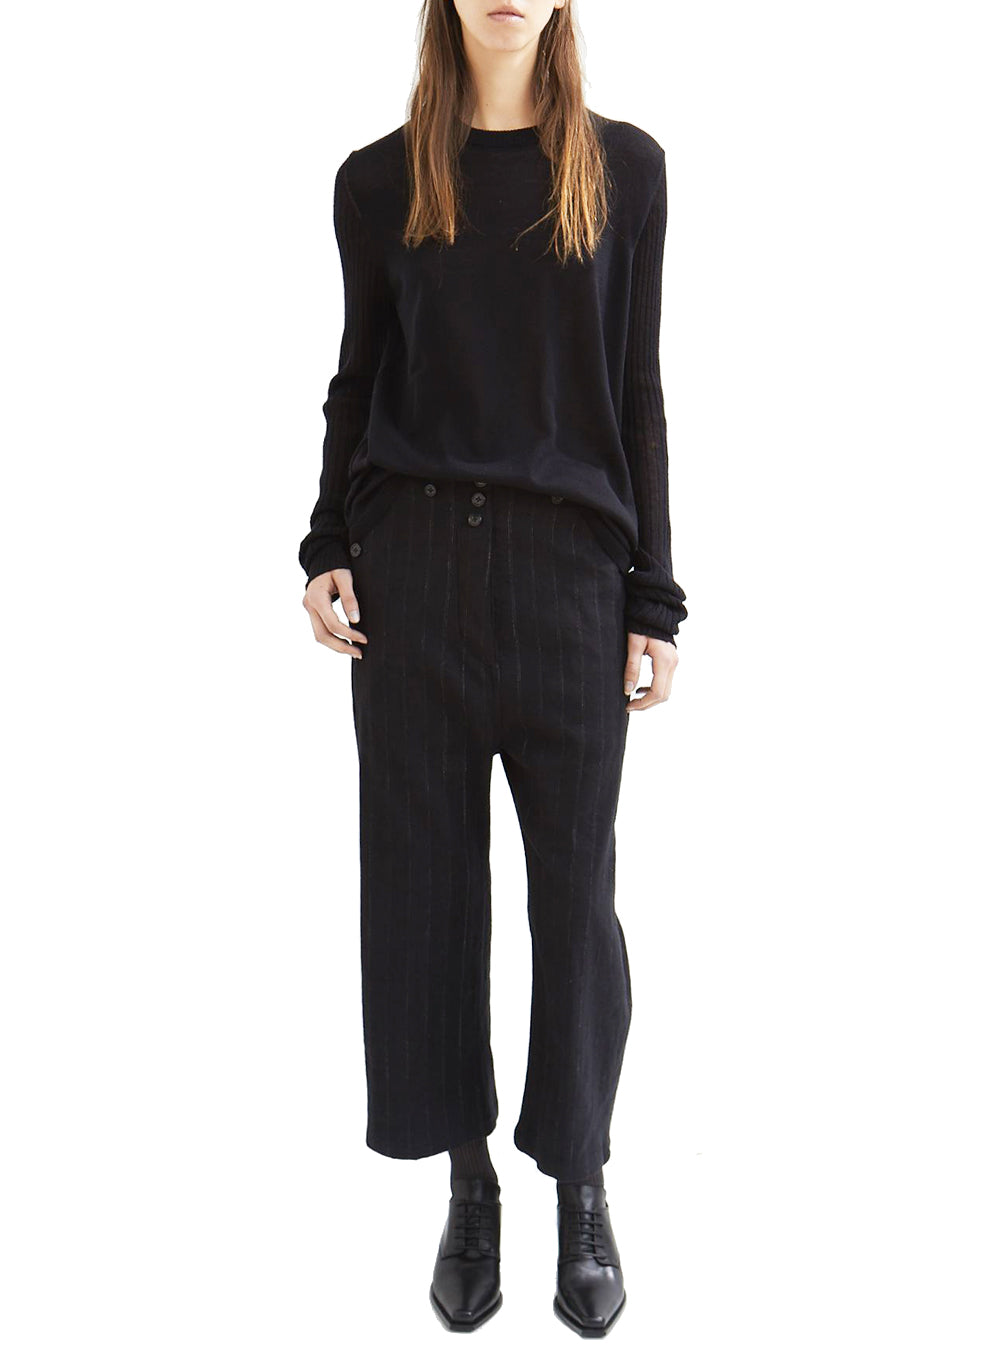 ANN DEMEULEMEESTER | Algernon Linen and Wool Pinstriped Trousers